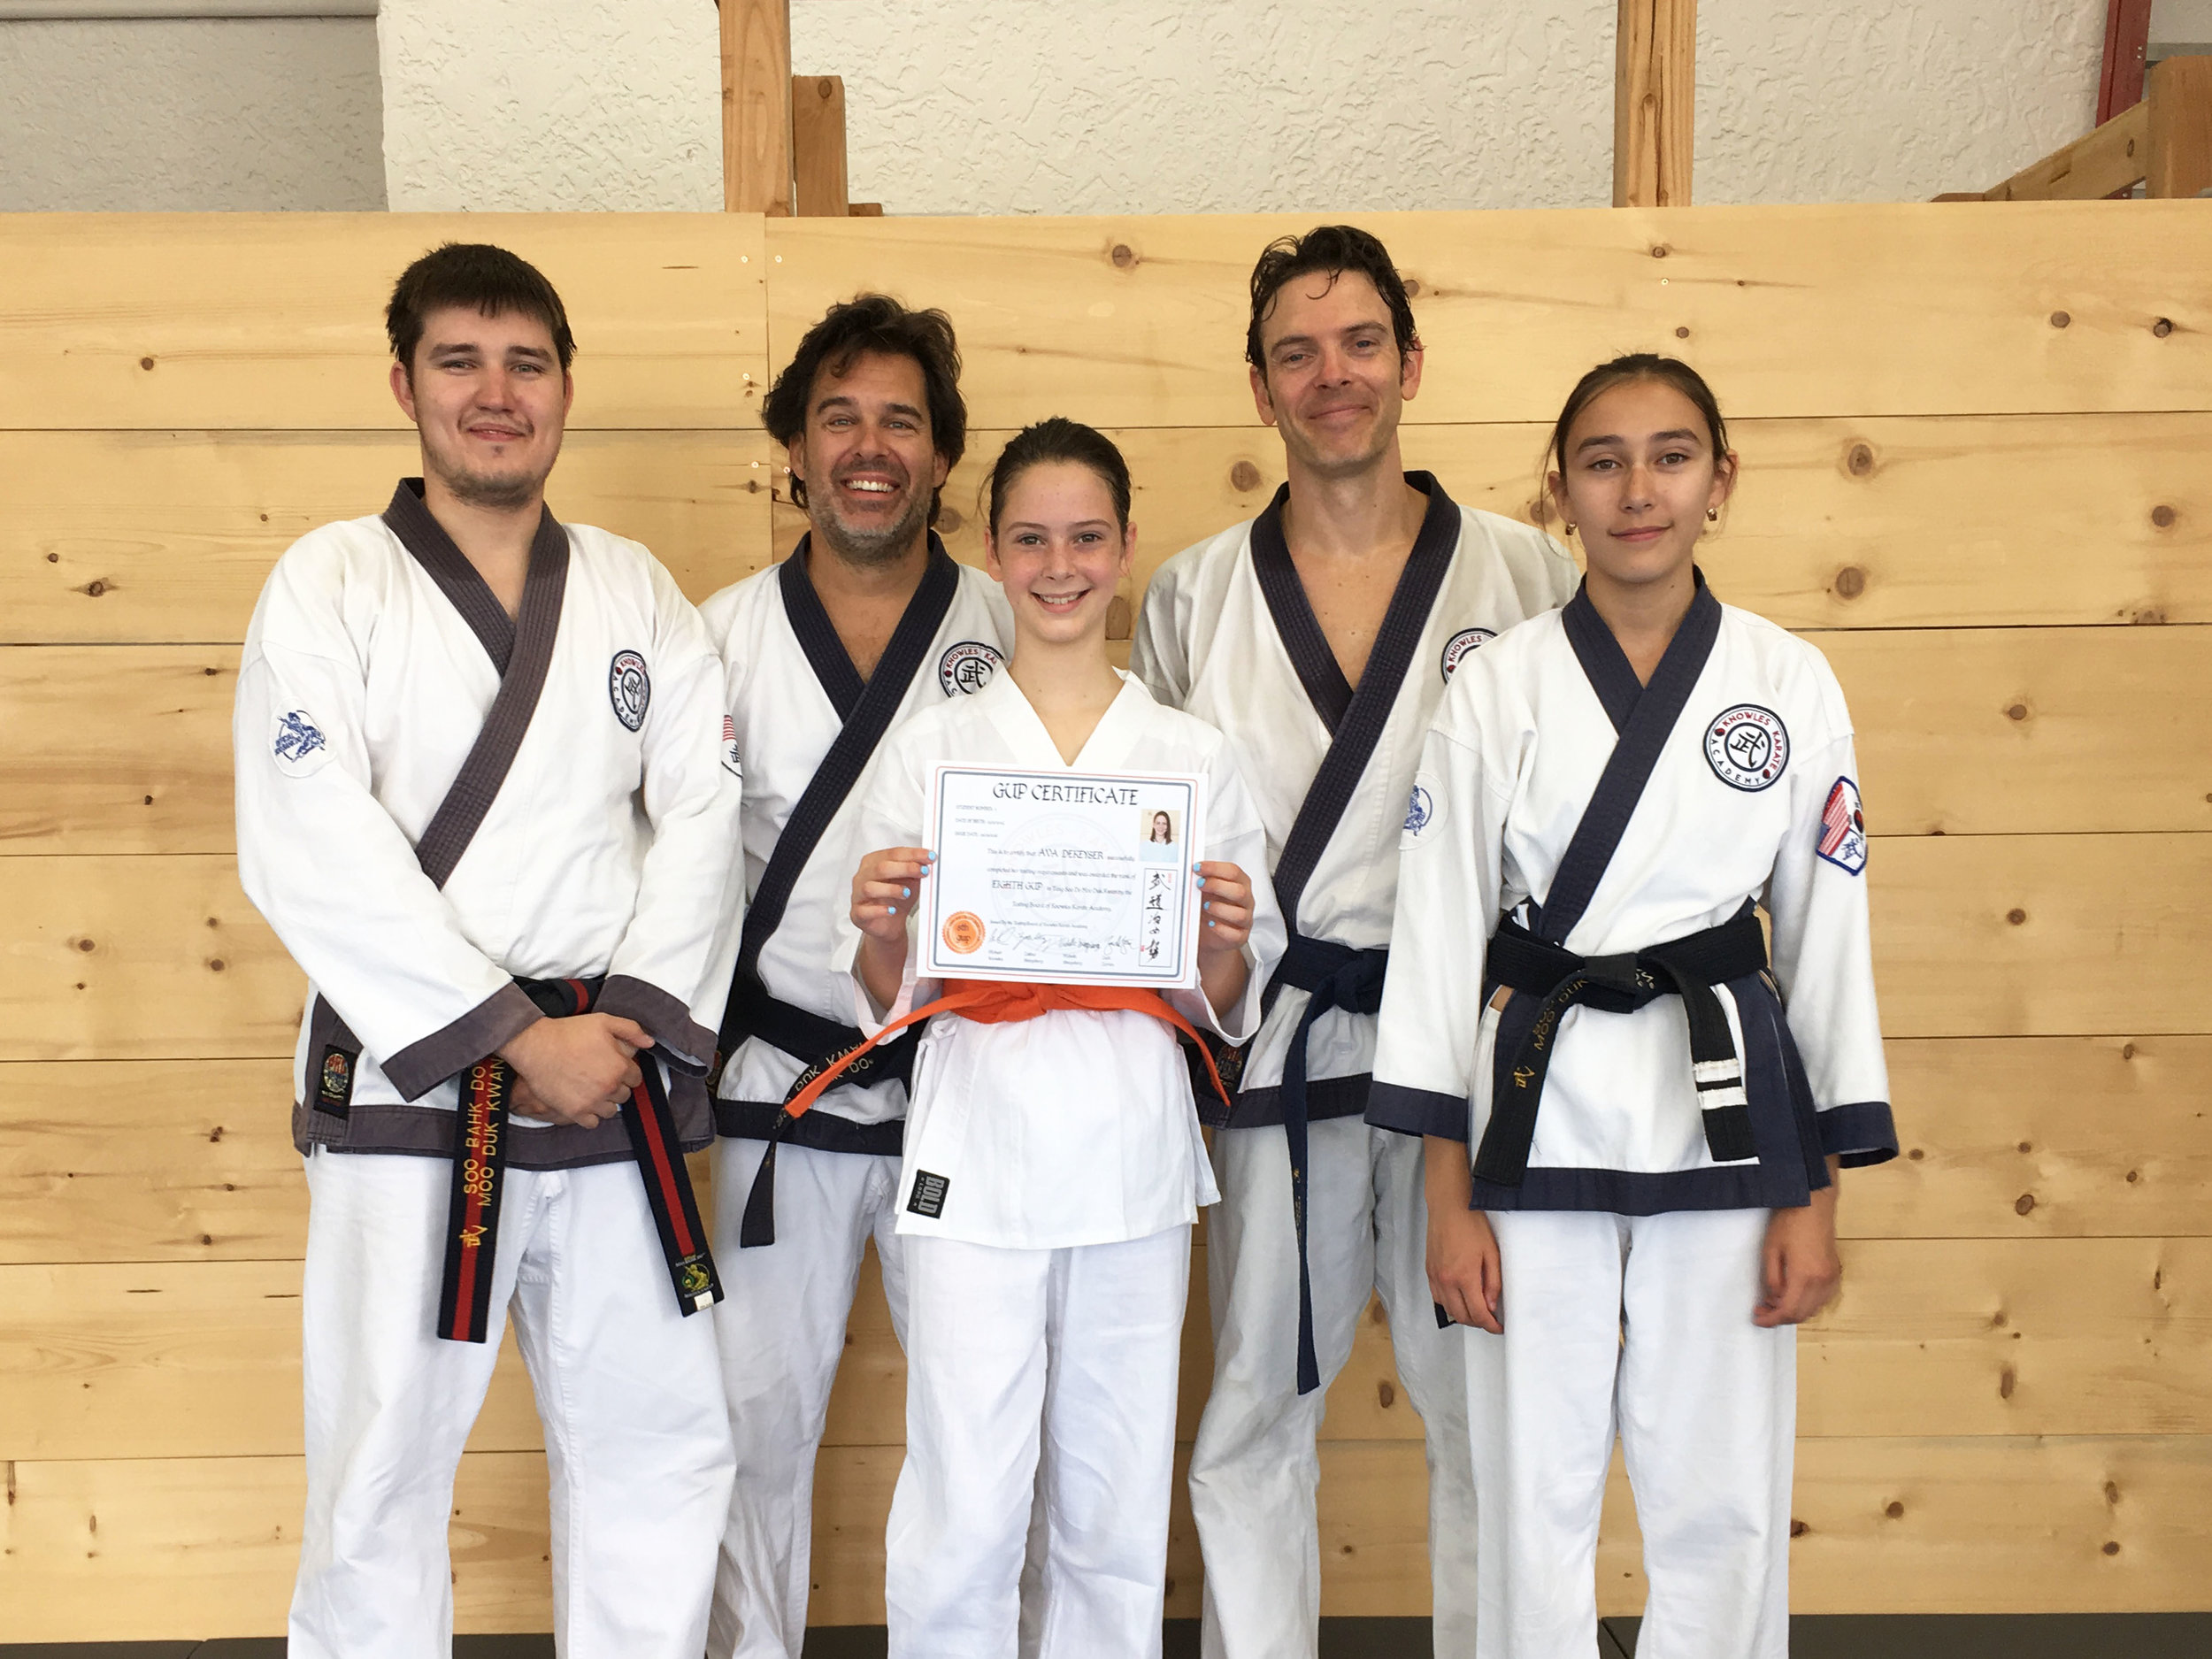 Congrats to our first orange belt!